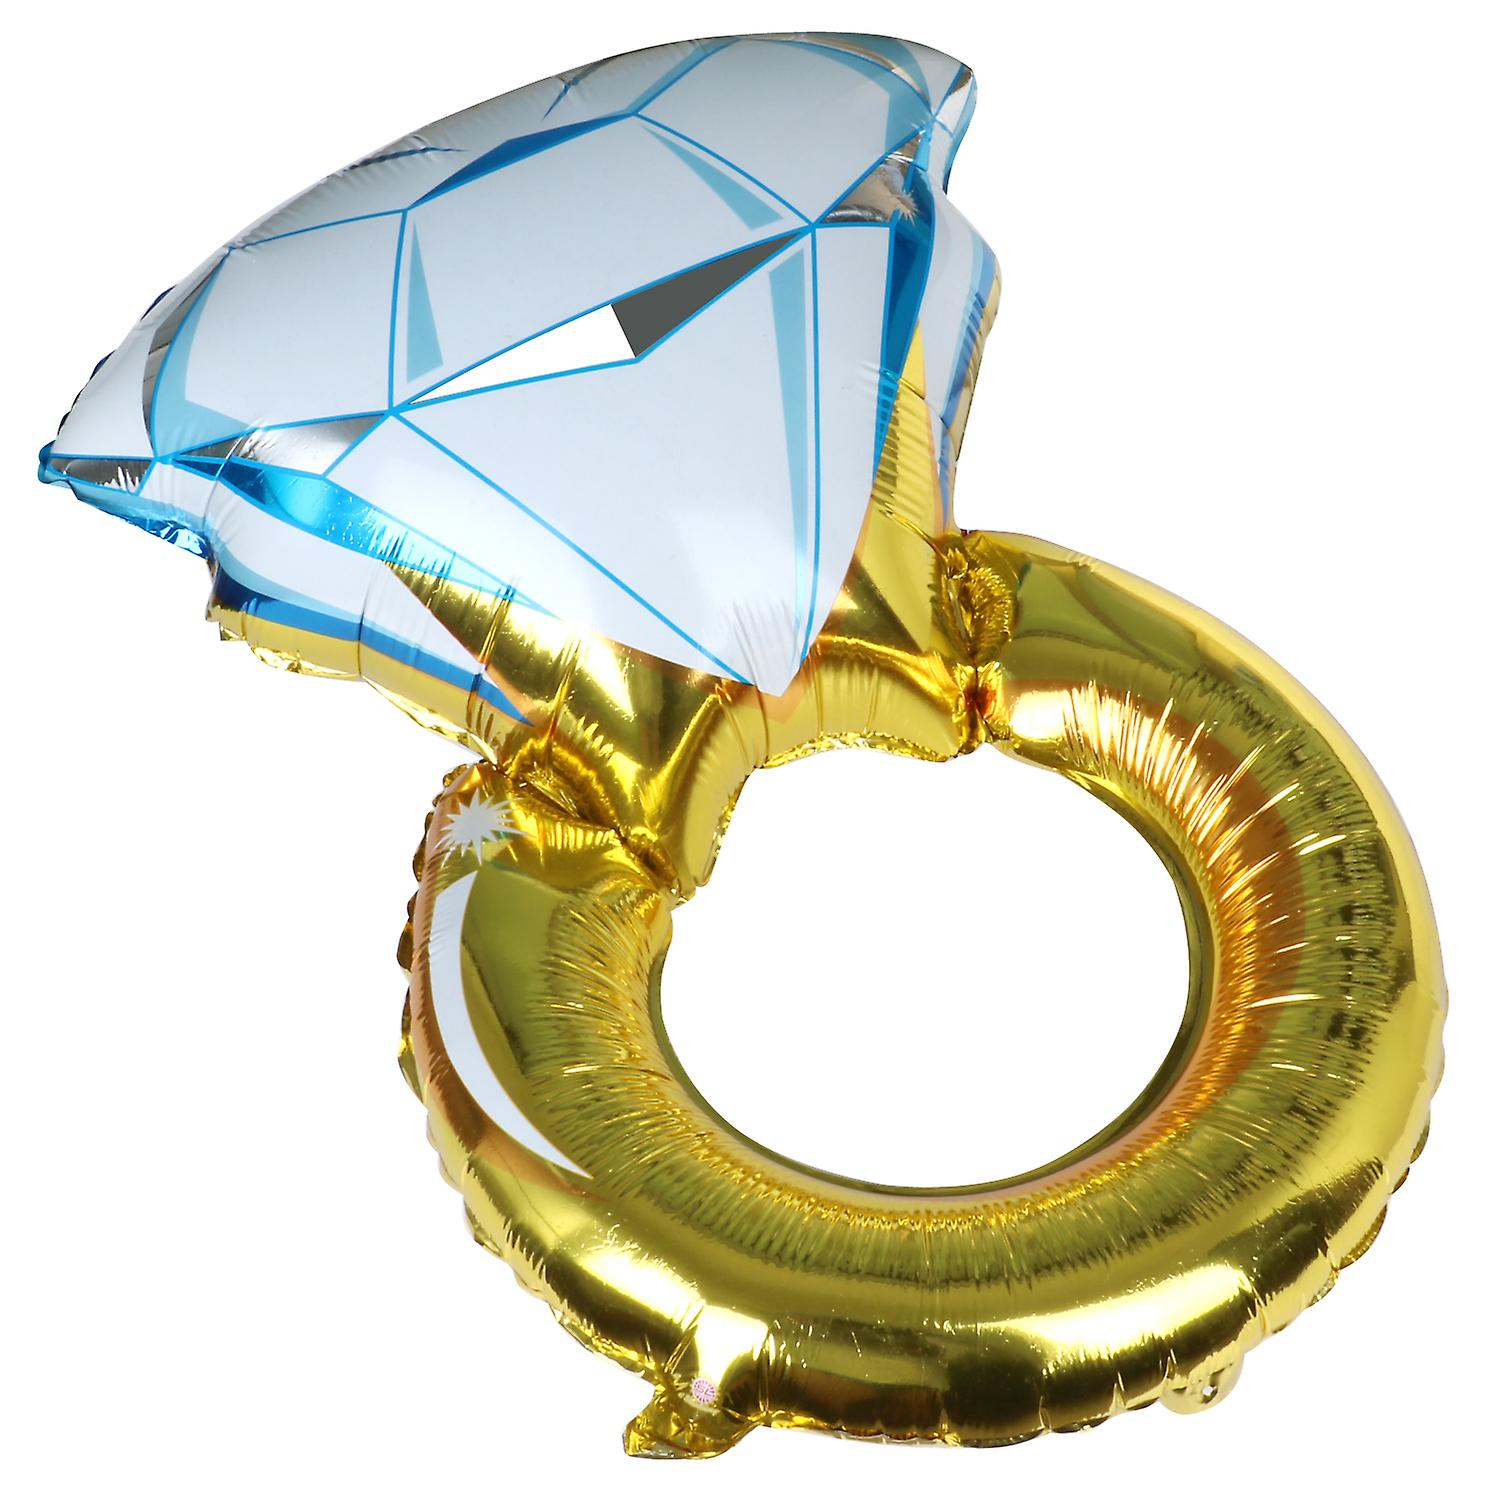 Large Engagement Ring Balloon Gold Blue Party Celebration - By TRIXES